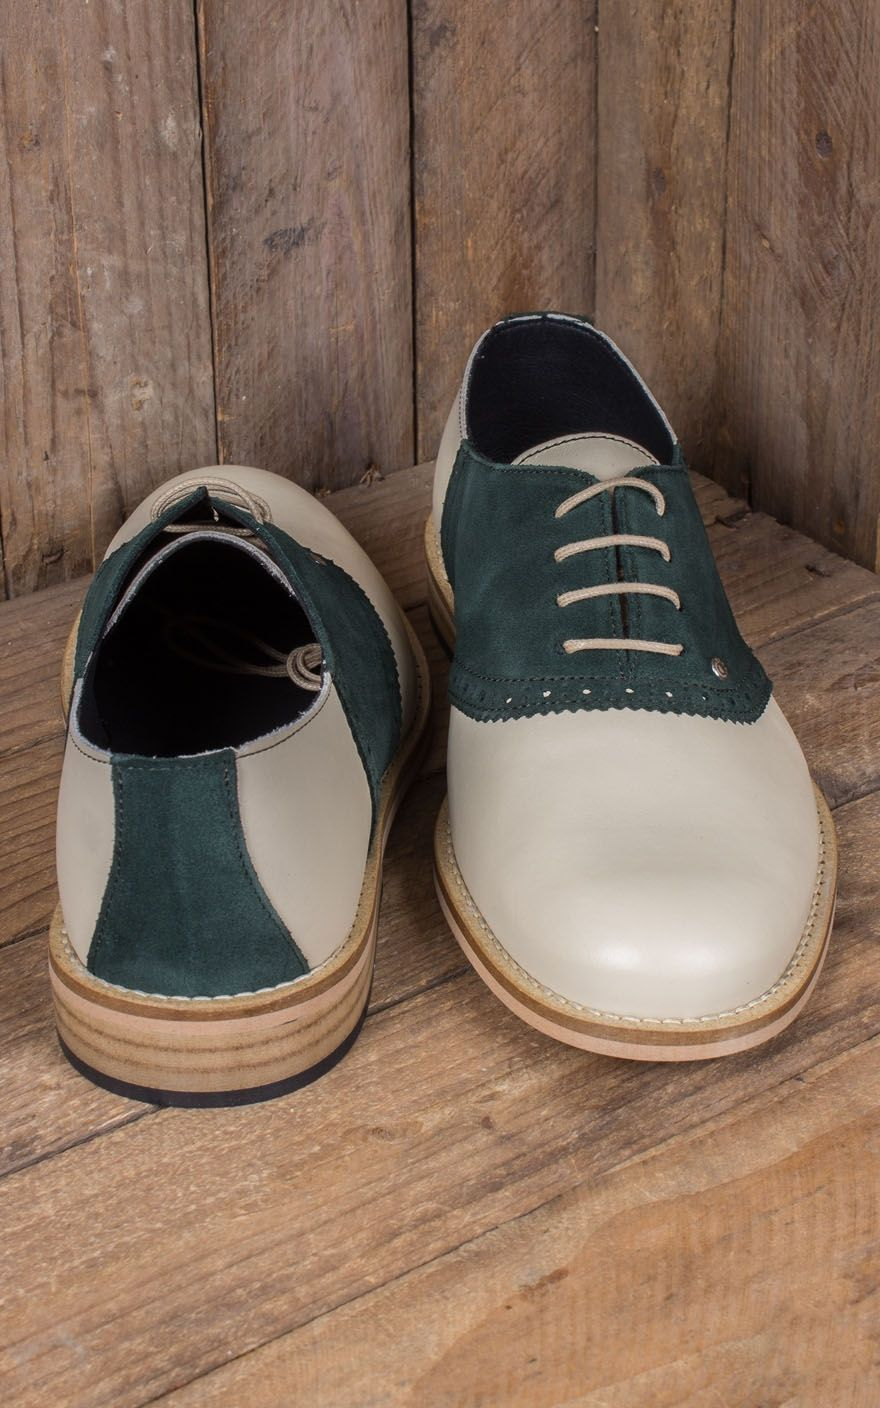 Steelground Saddle Shoes Beige Green Rockabilly Rules